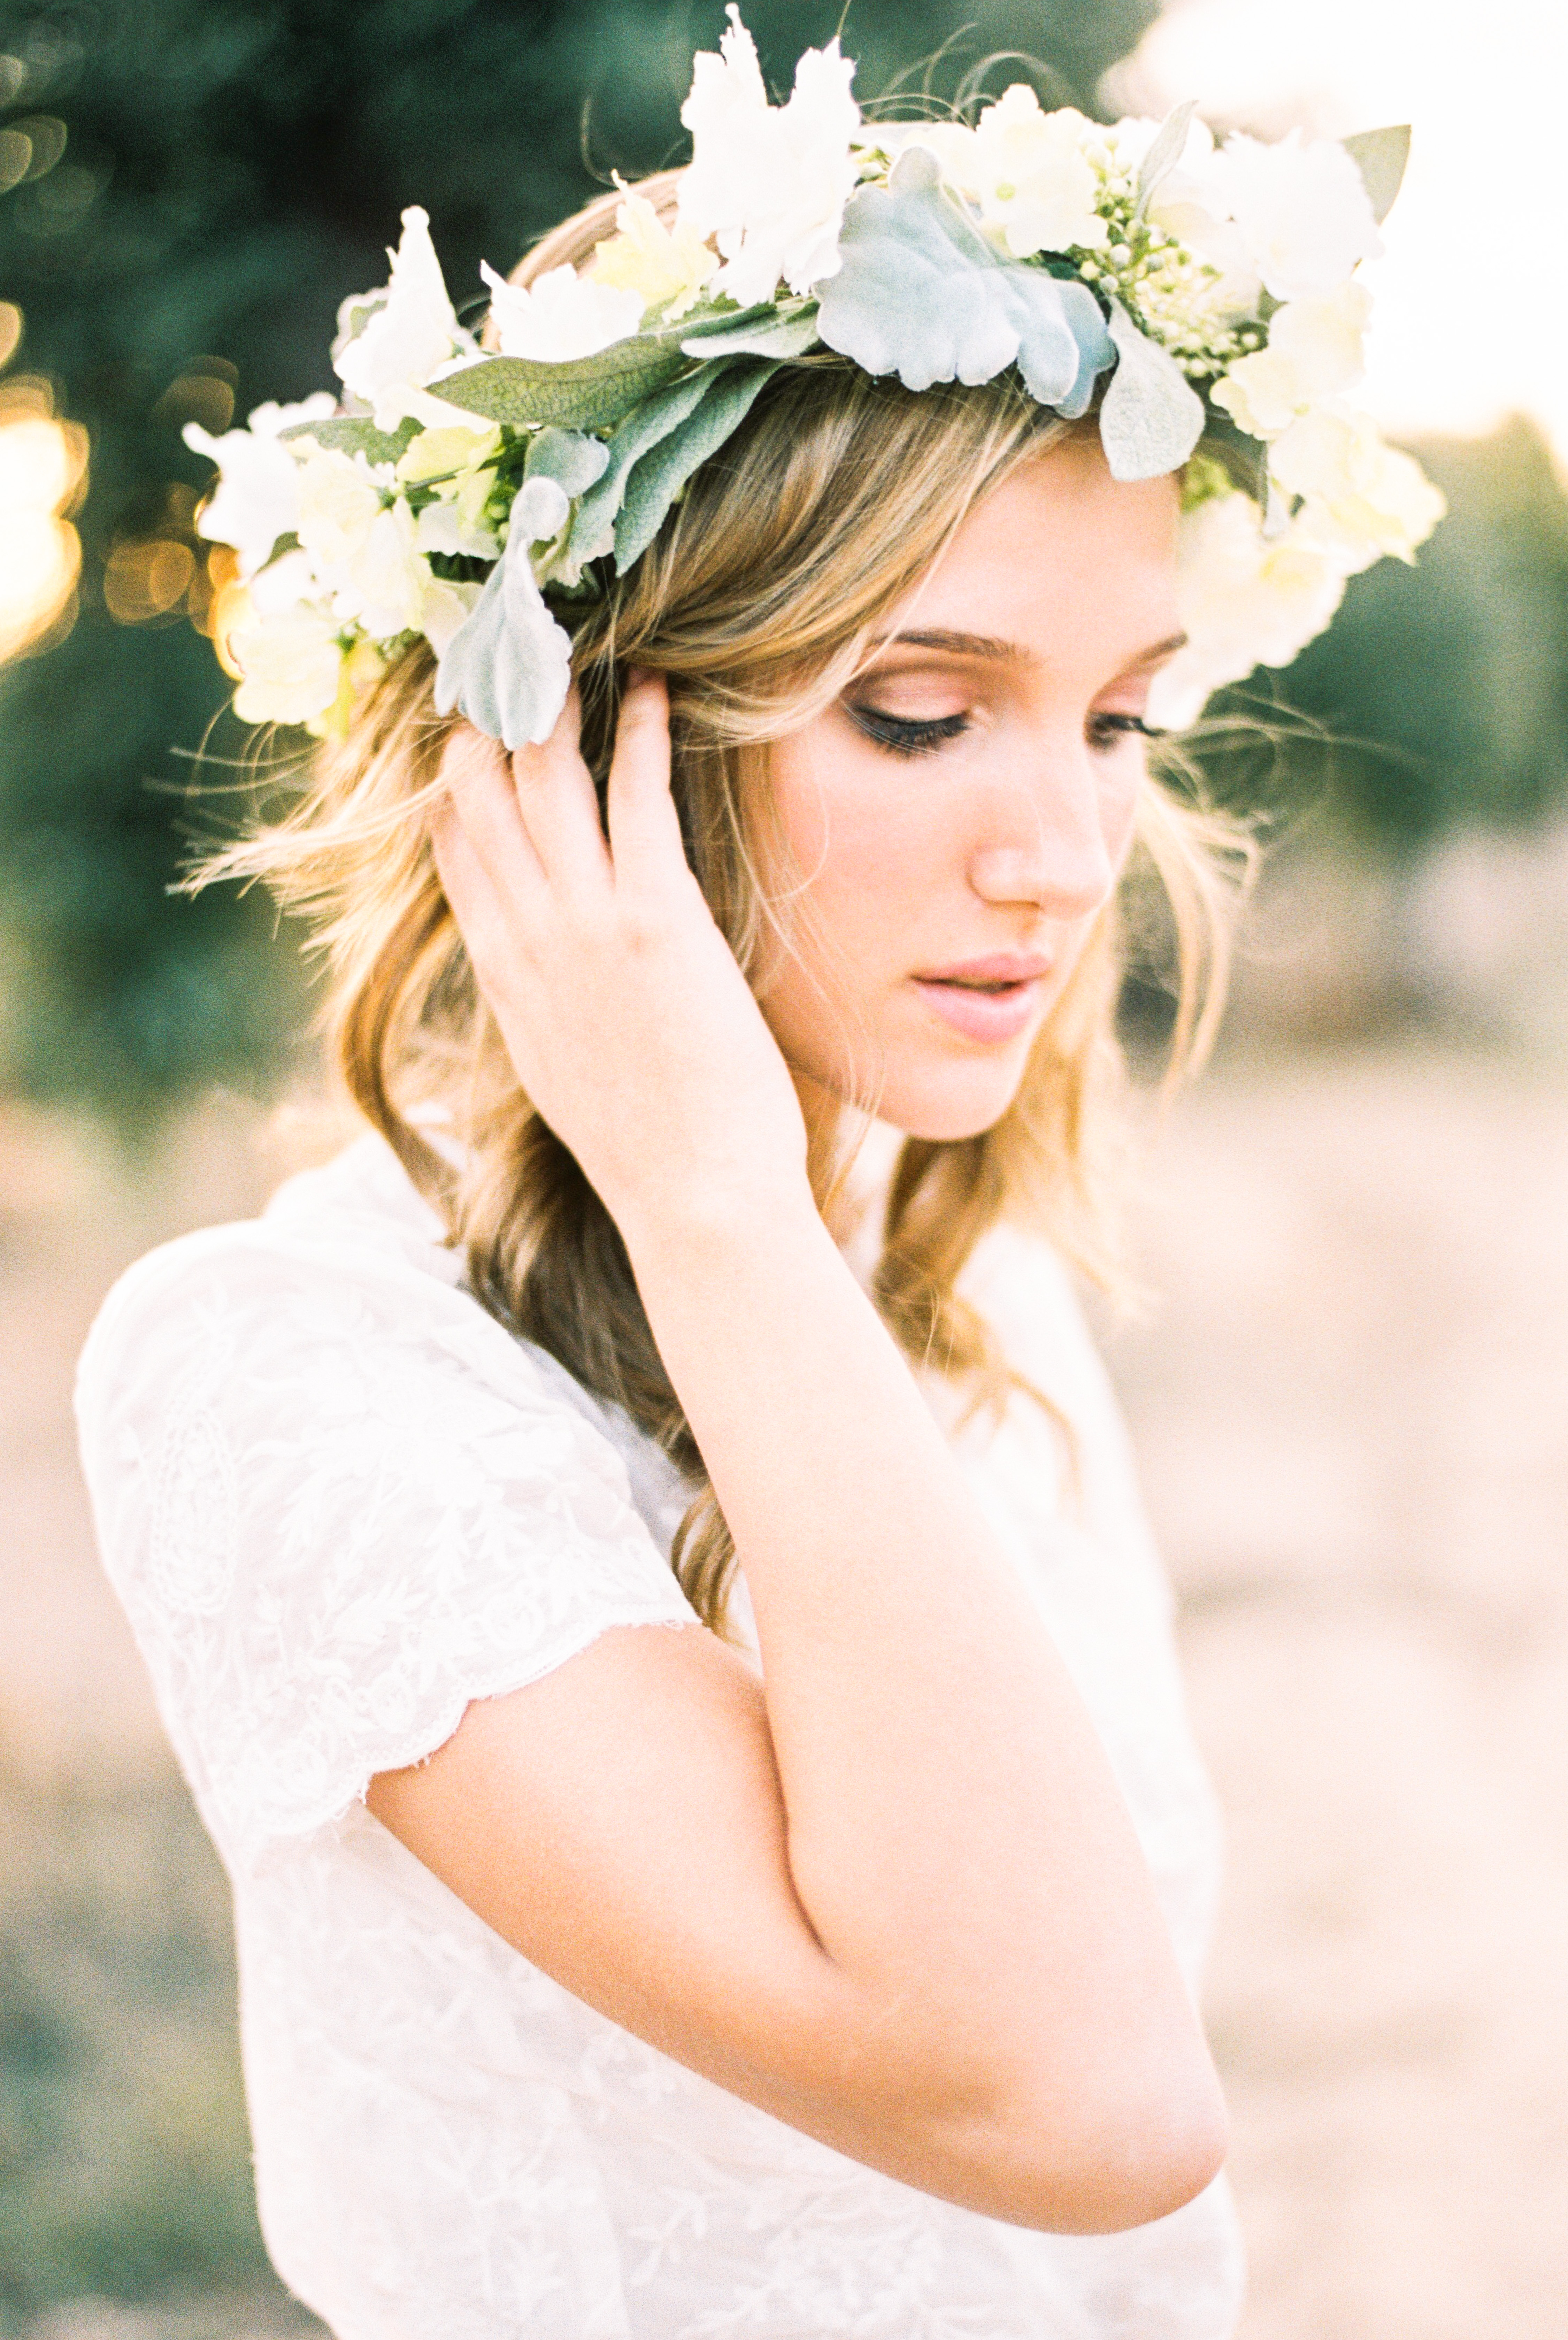 bloved-wedding-blog-boho-bridal-styling (6)